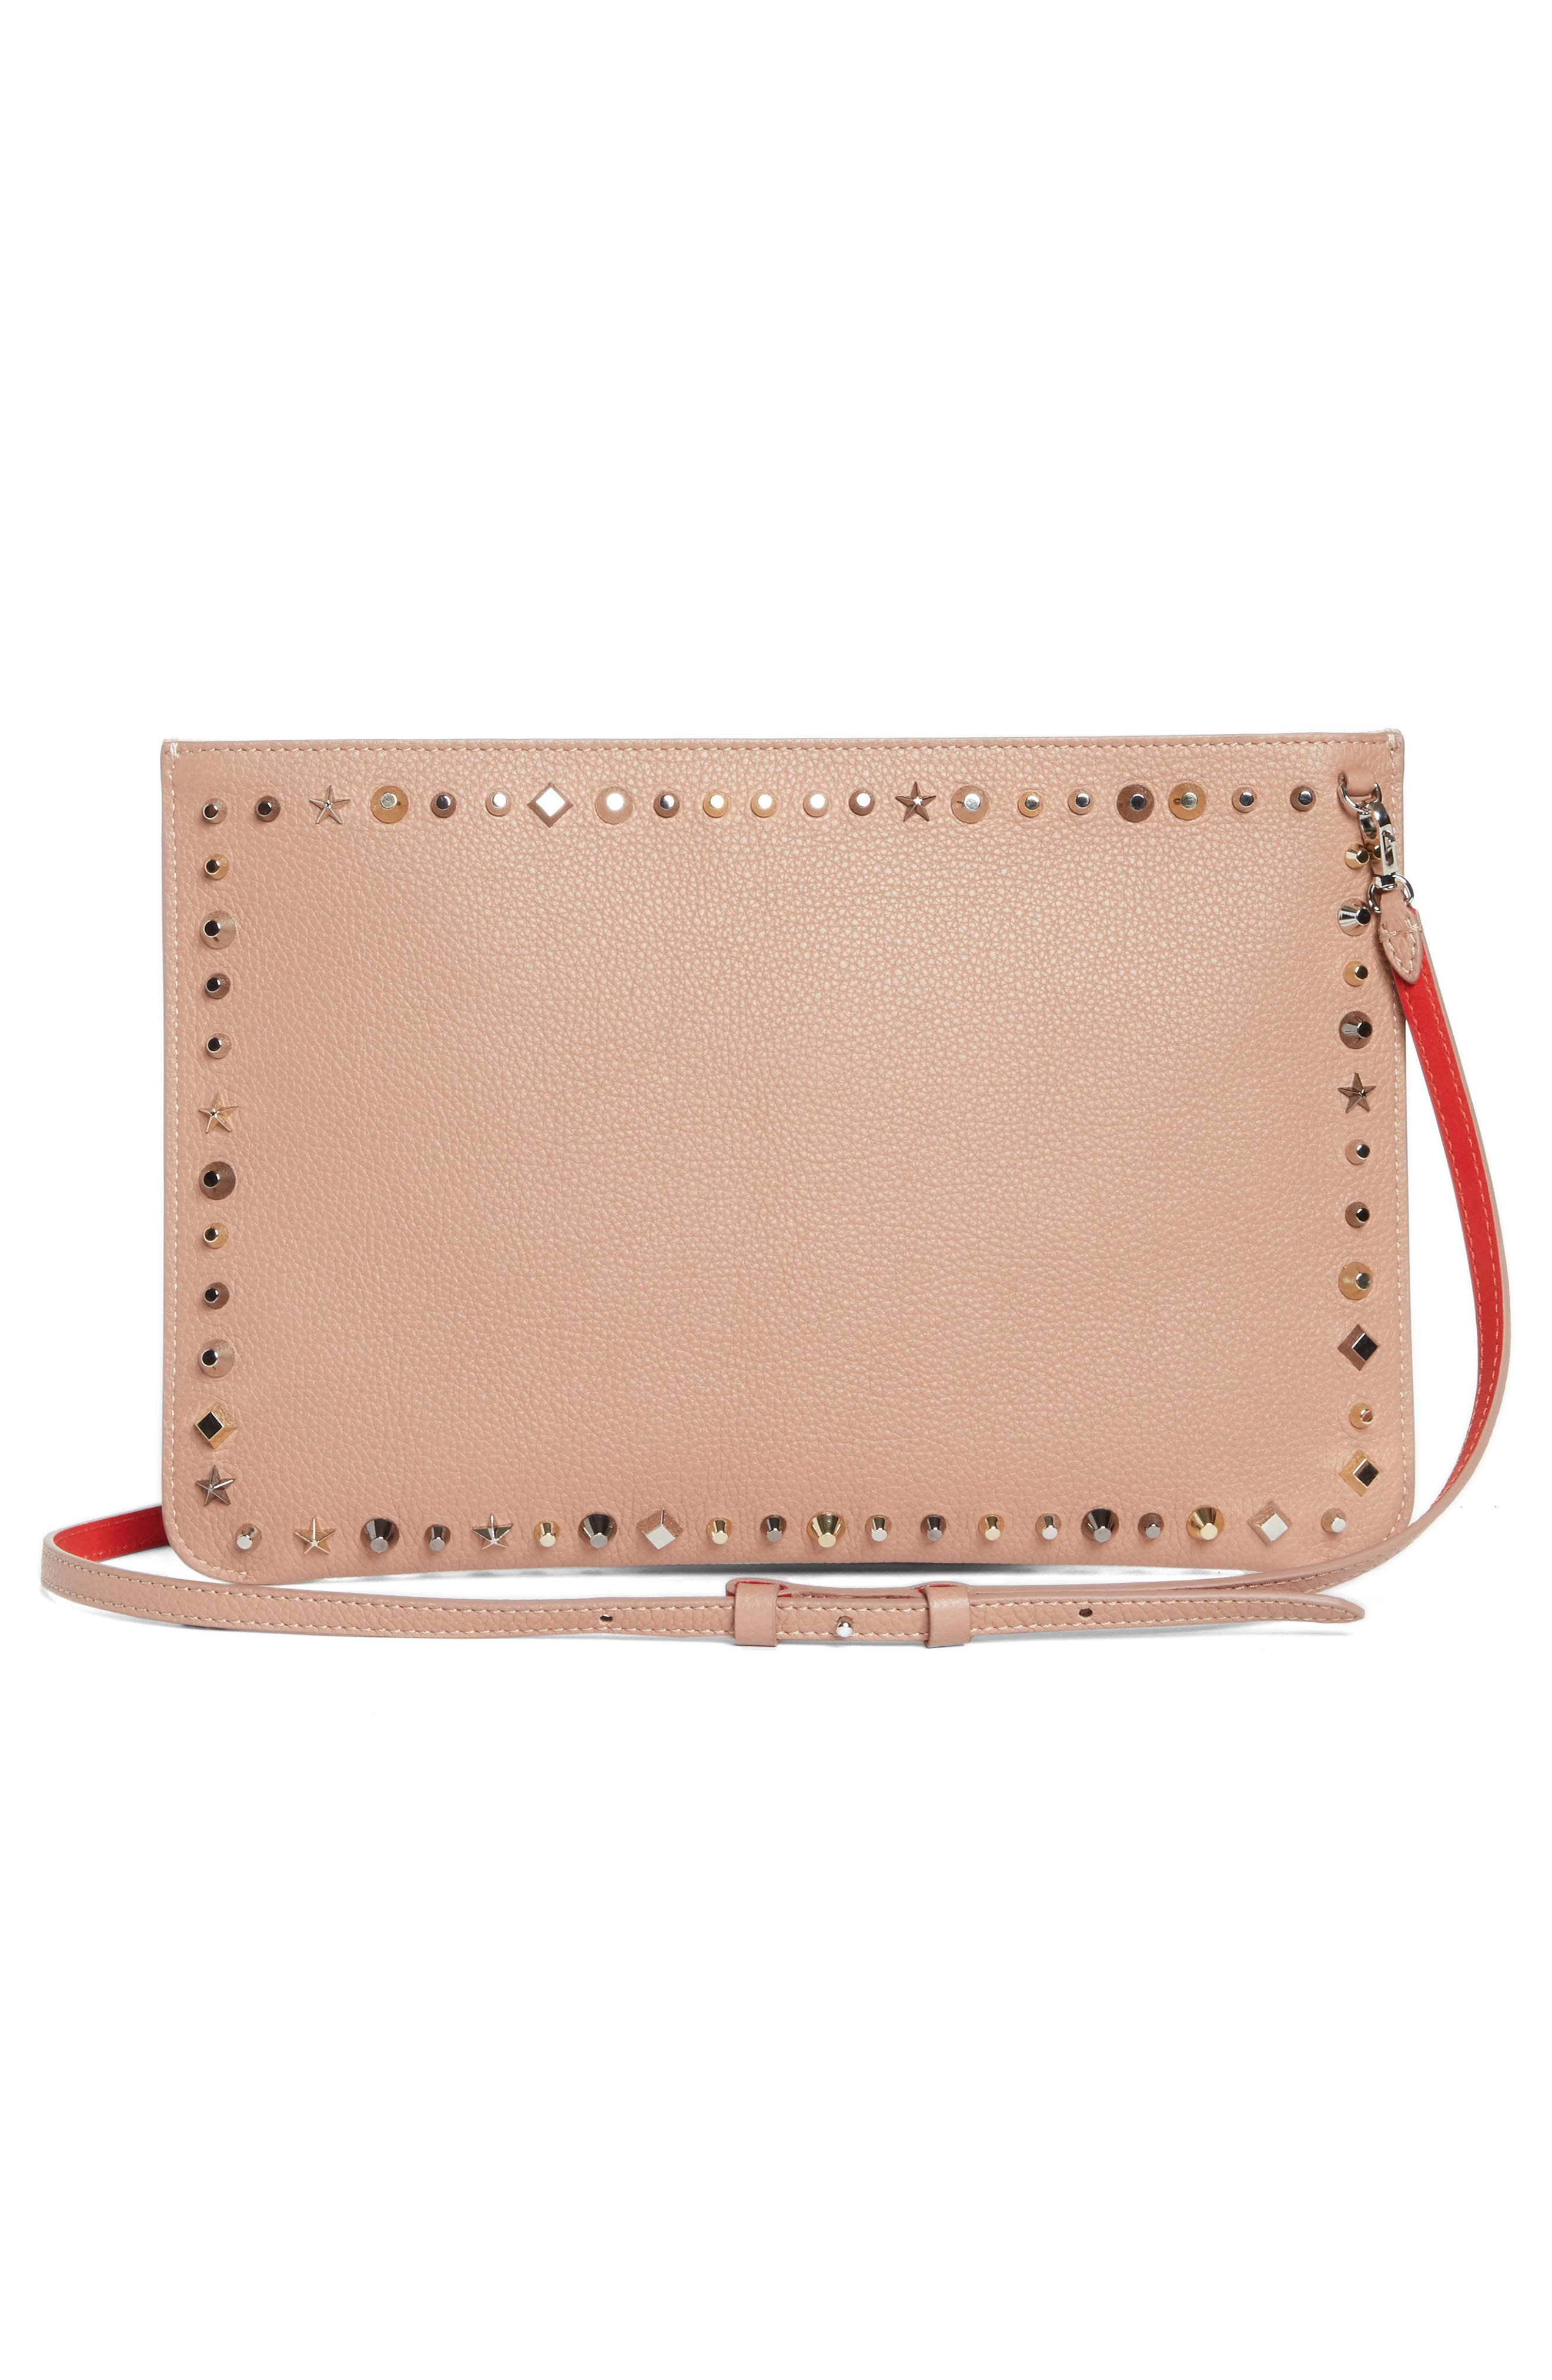 Loubiclutch Spiked Leather Clutch,                             Alternate thumbnail 3, color,                             Nude/ Multimetal